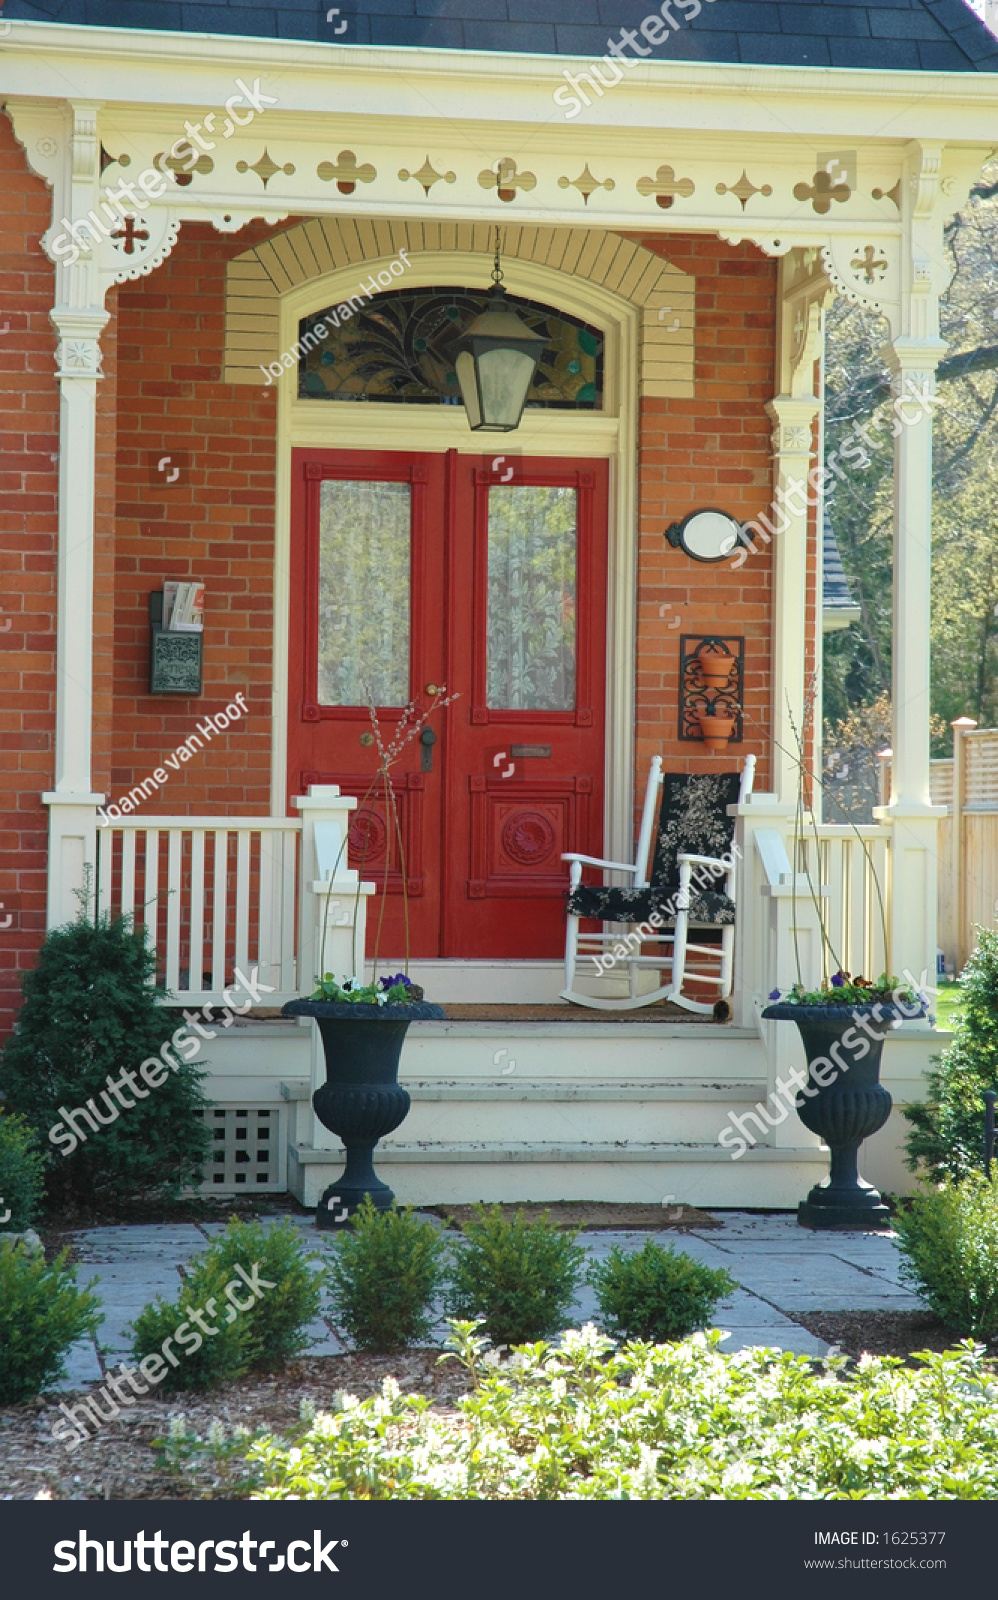 Front Door Entrance Victorian Home Red Stock Photo 1625377